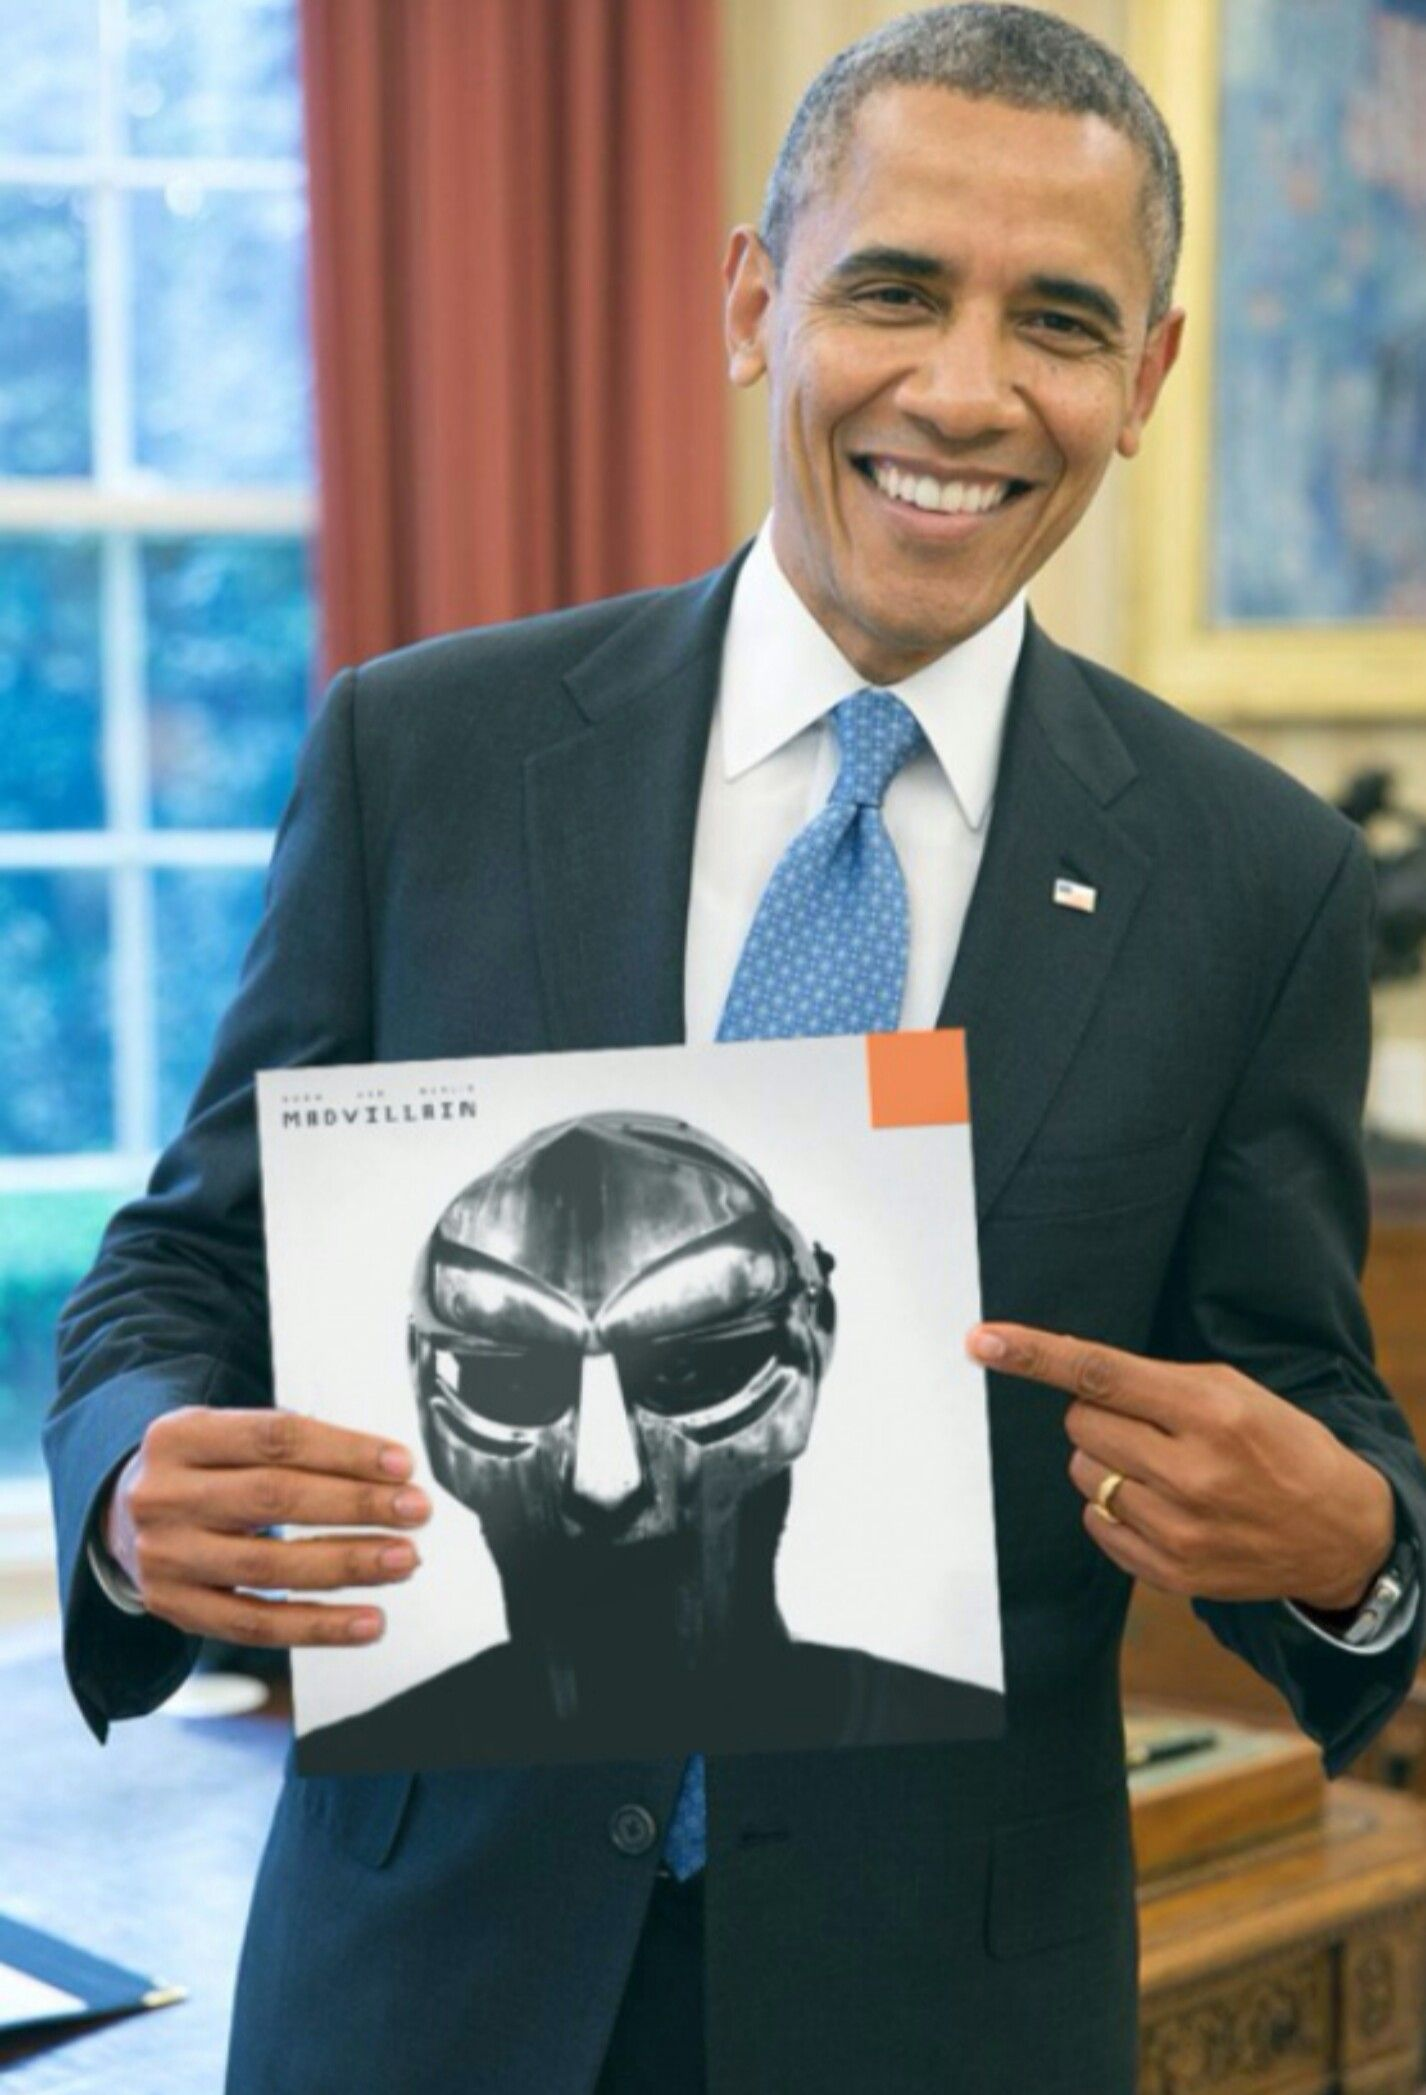 Even President Obama S A Big Mf Doom Fan Hip Hop And R B Kendrick Lamar Kendrick